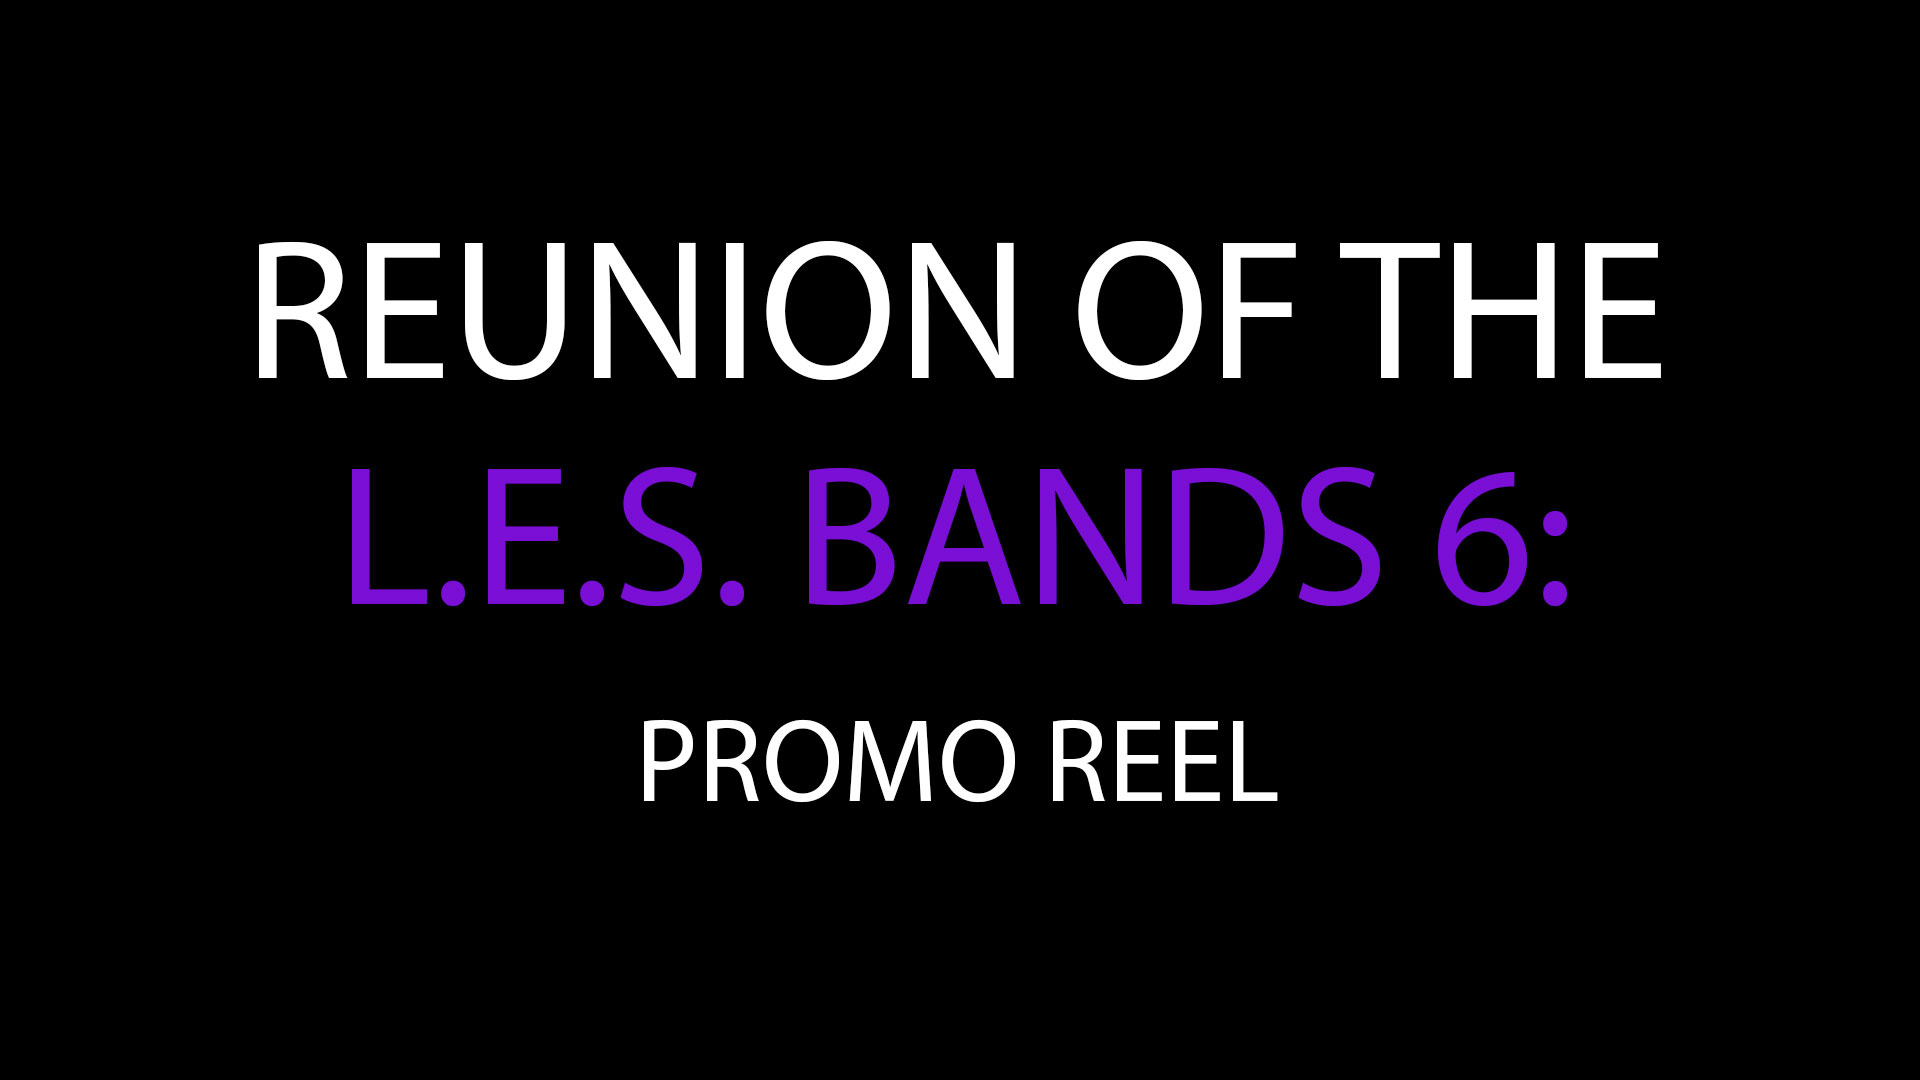 Reunion of the L.E.S Bands 6: 2013: 2018 - Reel